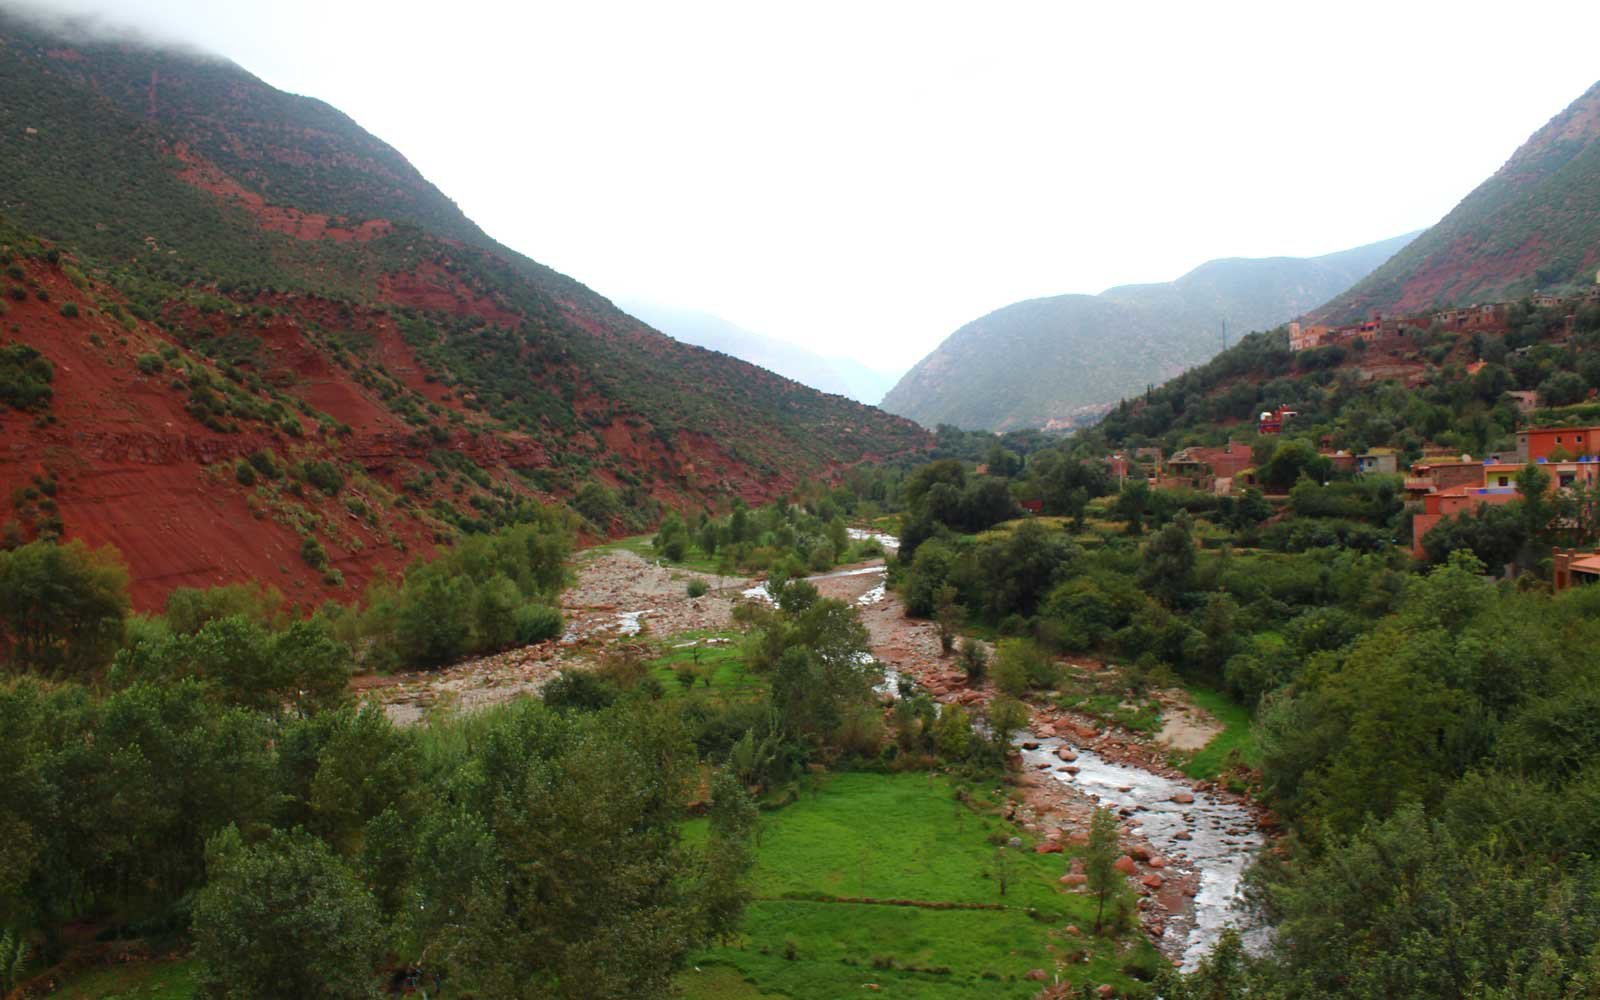 Ourika River, in the Ourika Valley, Morocco